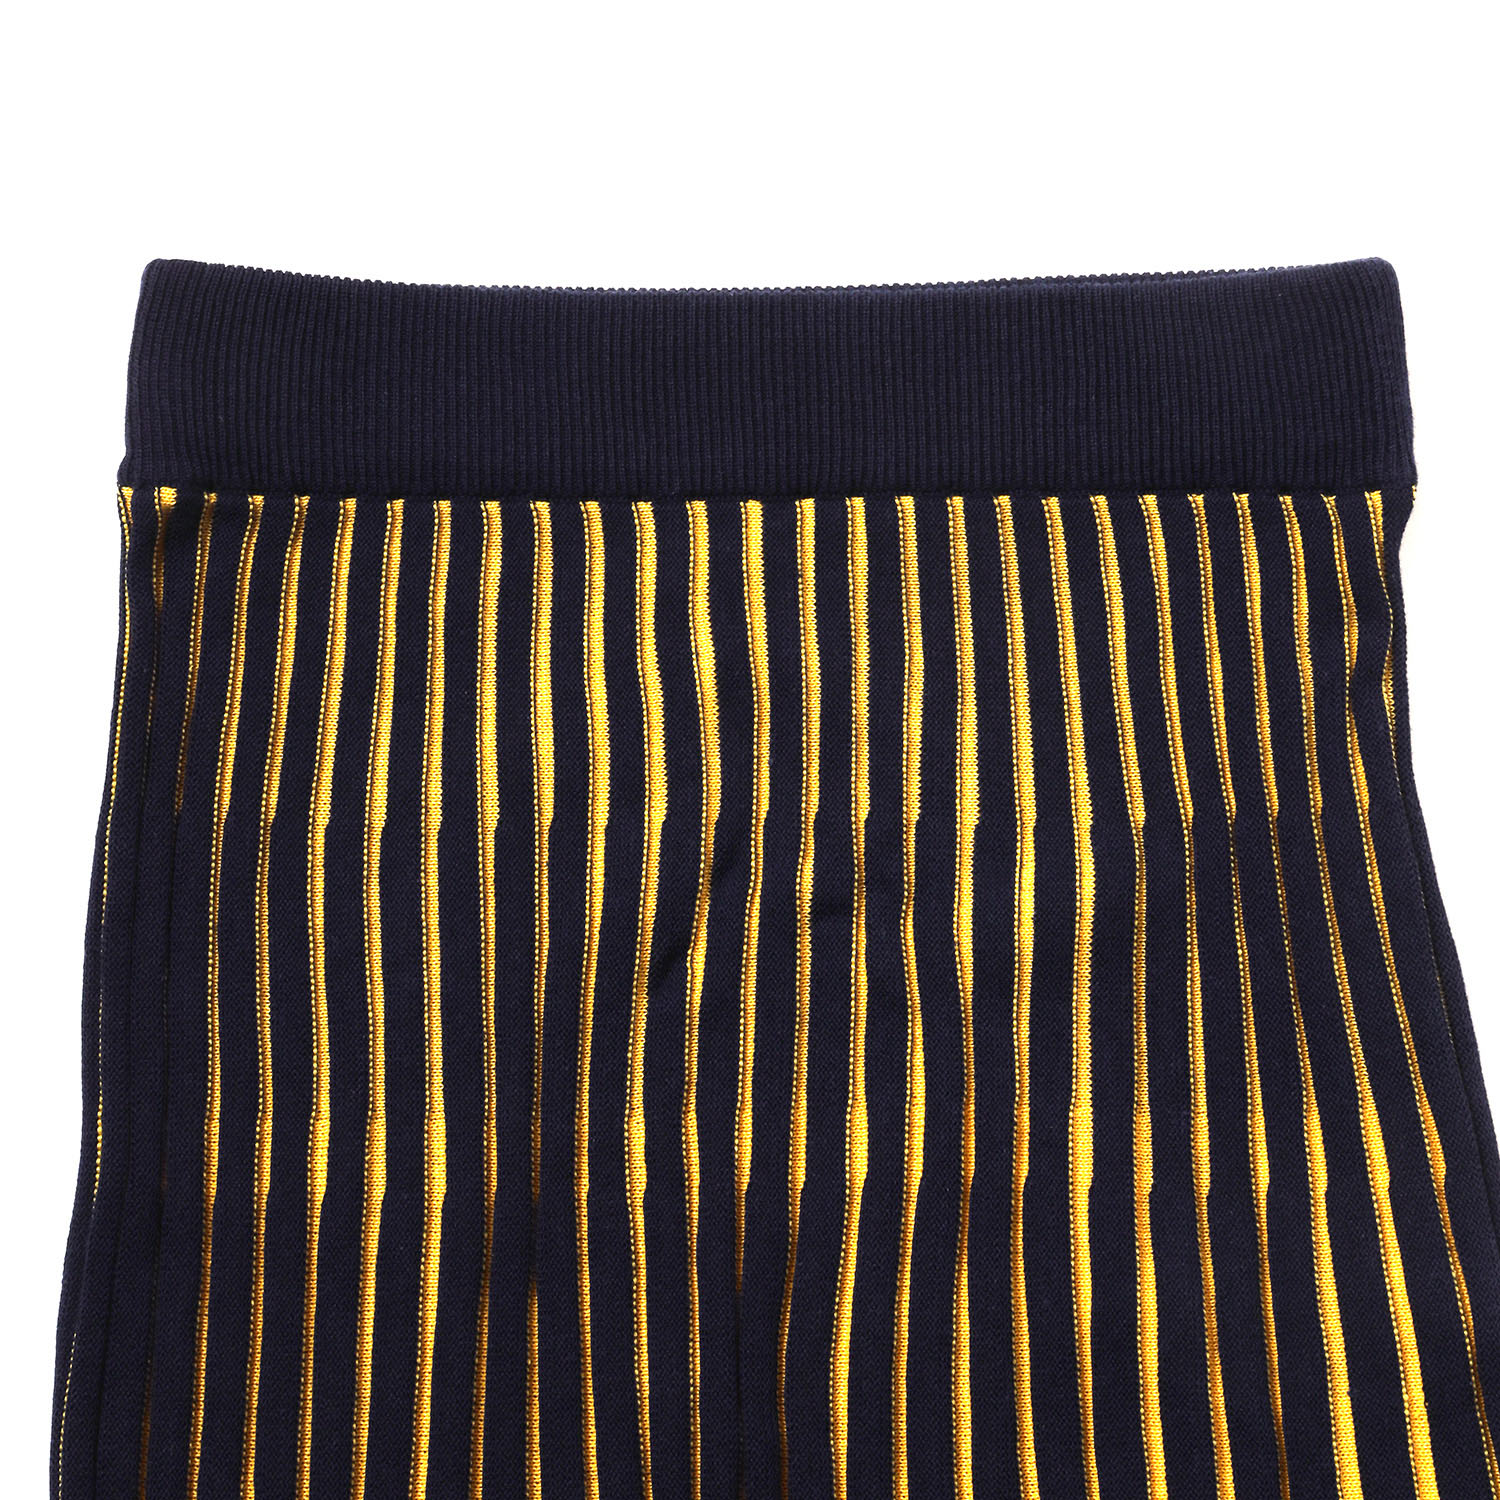 EVANGELION 2tone Knit Pleats Skirt (NAVY(Mark.06))